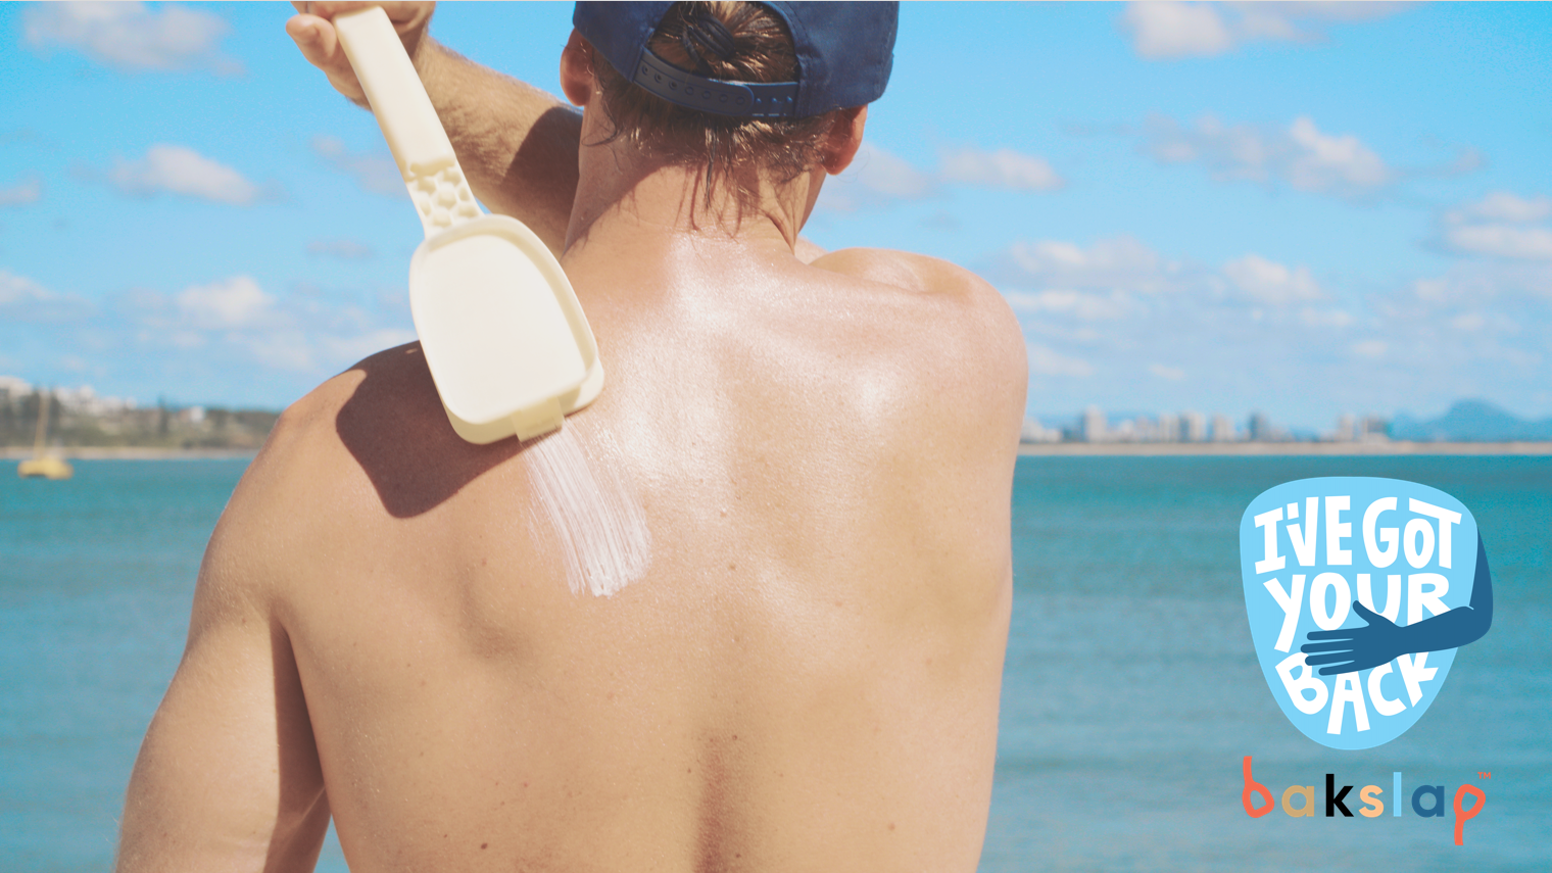 Easily apply sunscreen to all areas of your body, like your back, without the messy hands. We've got your back!